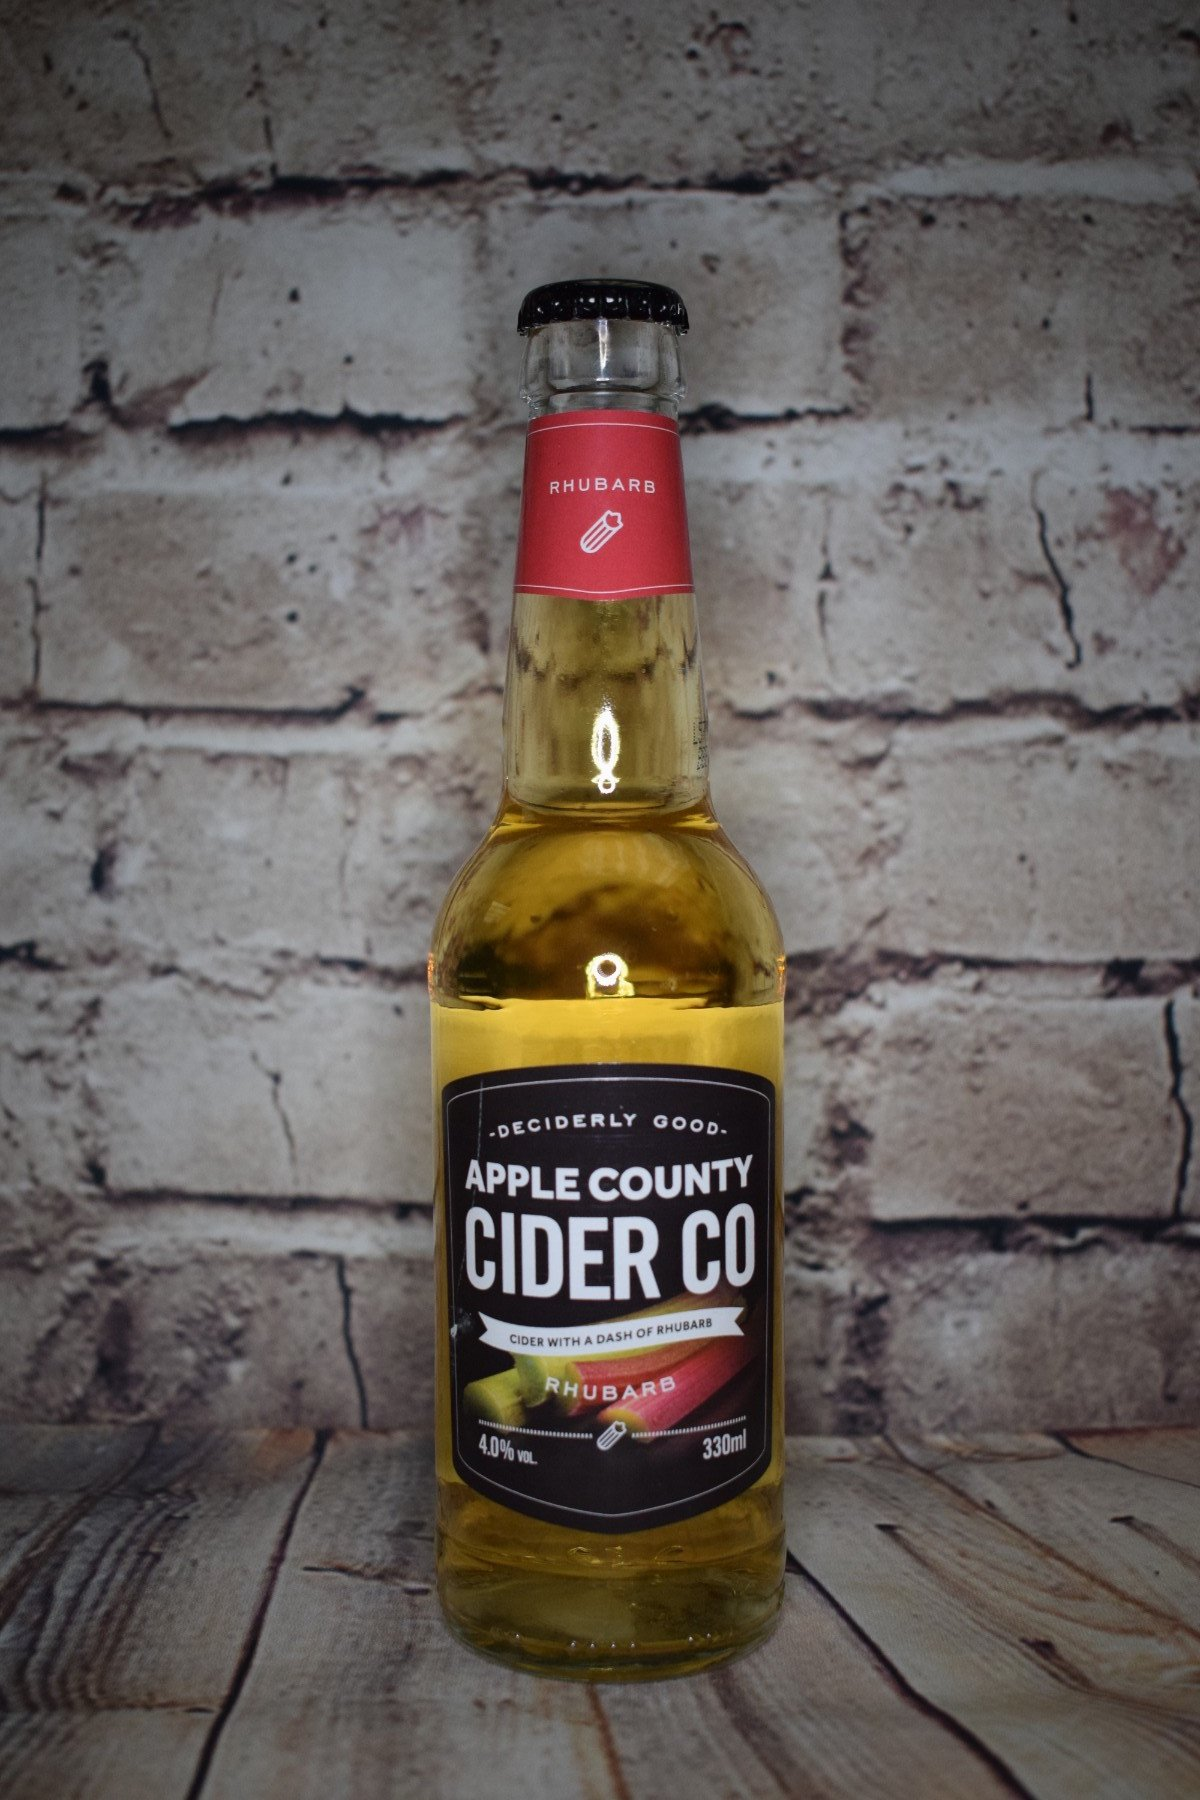 Gluten free shop for welsh beer welsh real ale cider and spirits apple county cider co rhubarb cider negle Image collections